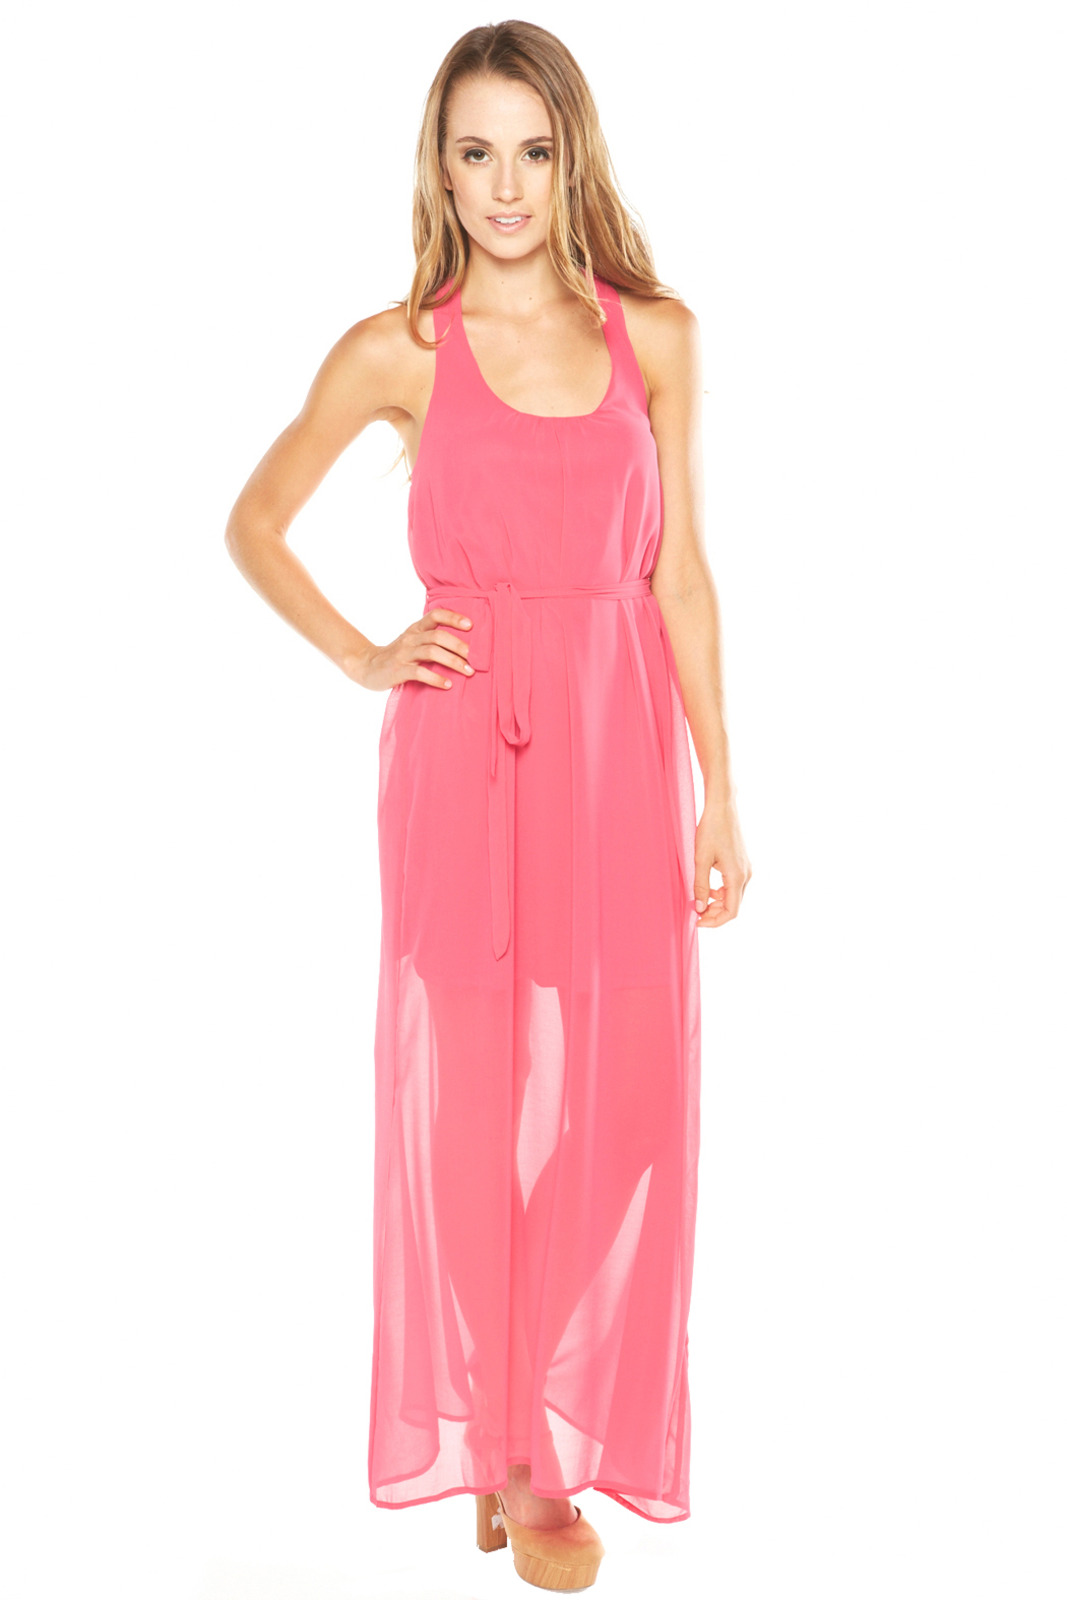 Ya Los Angeles Pink Maxi Dress - Main Image